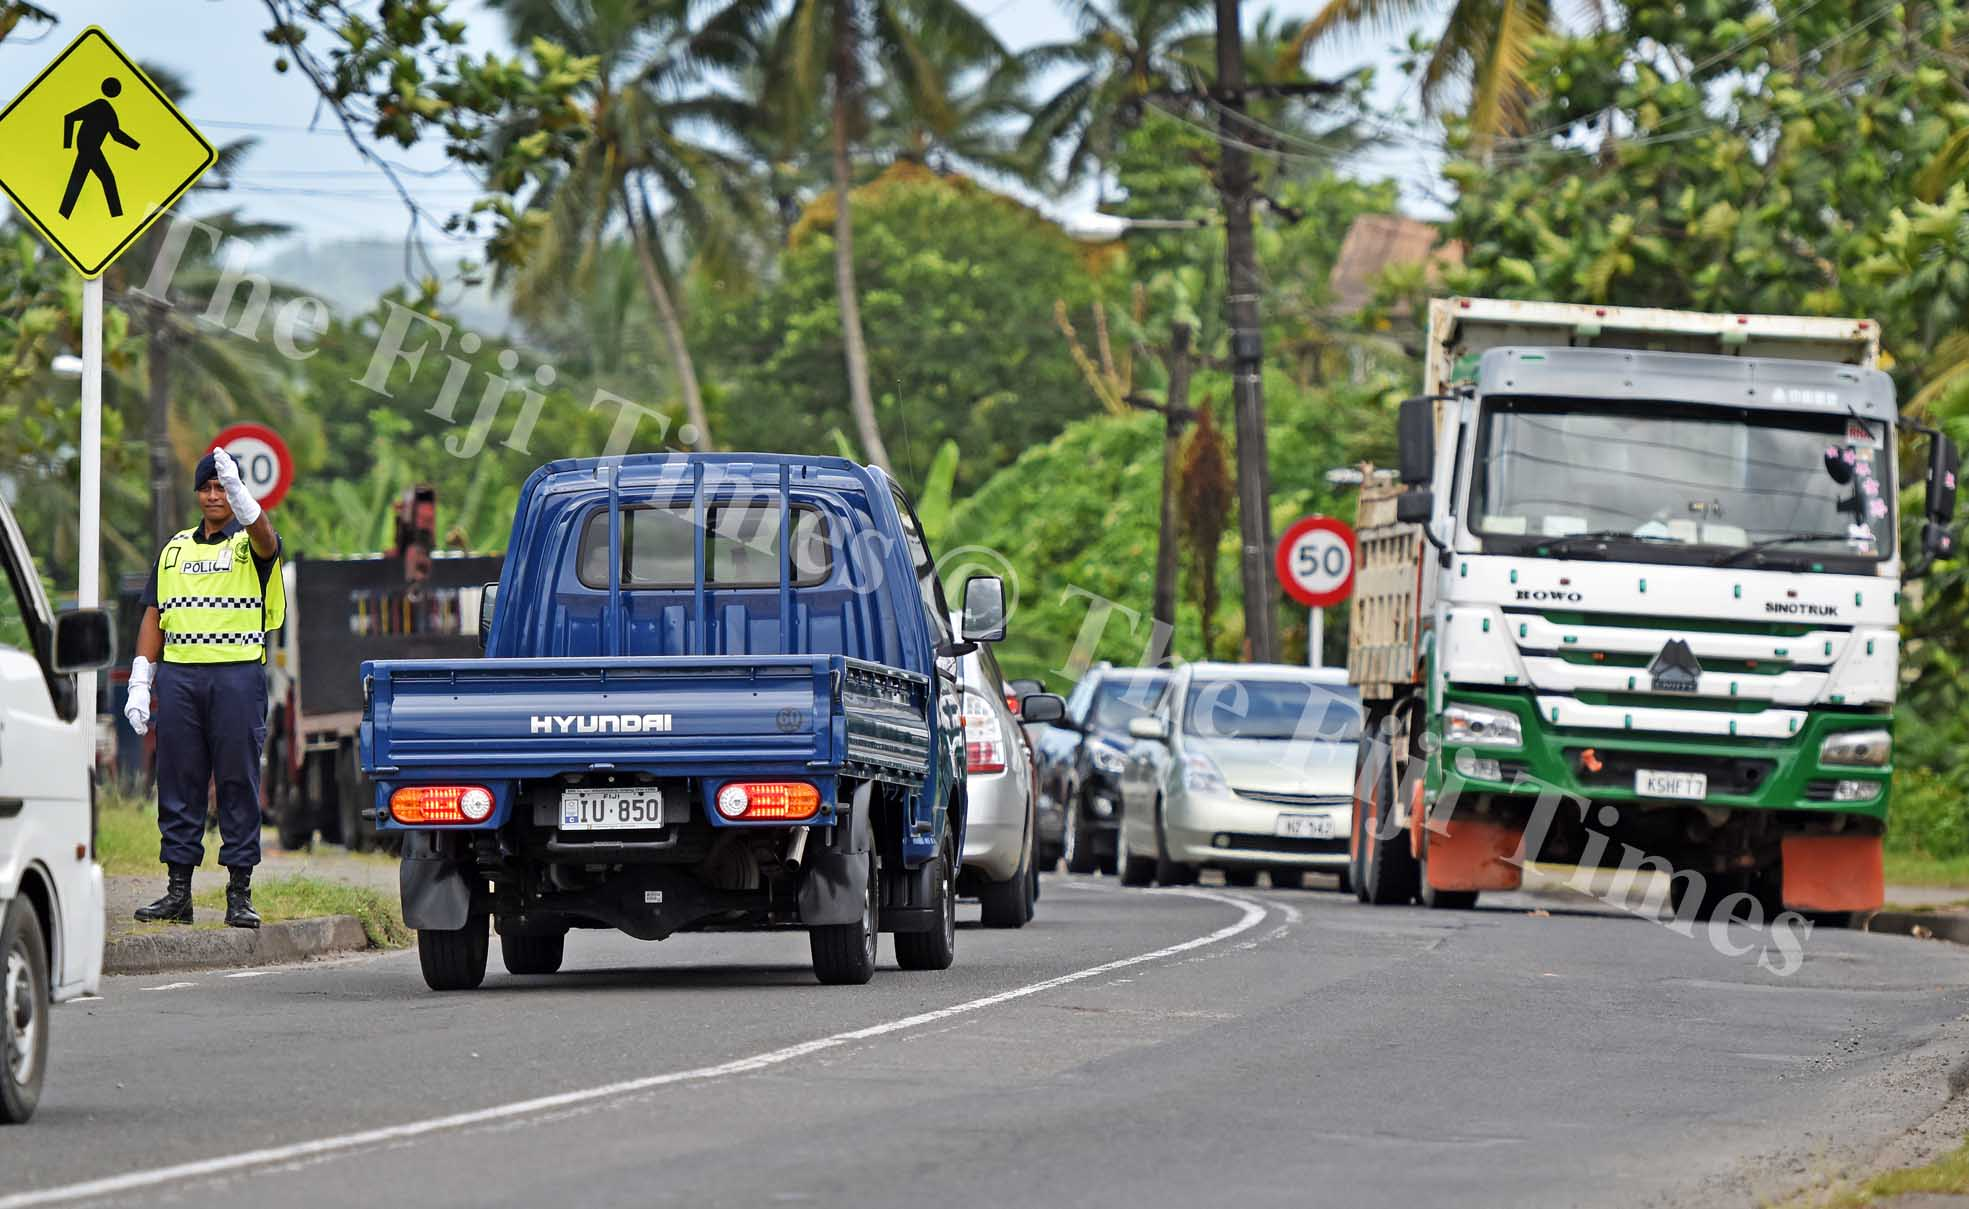 A police officer directs the traffic jam along Queens road near Lami town during a truck (on right) broke down near Lami Village in Lami yesterday. Picture: RAMA